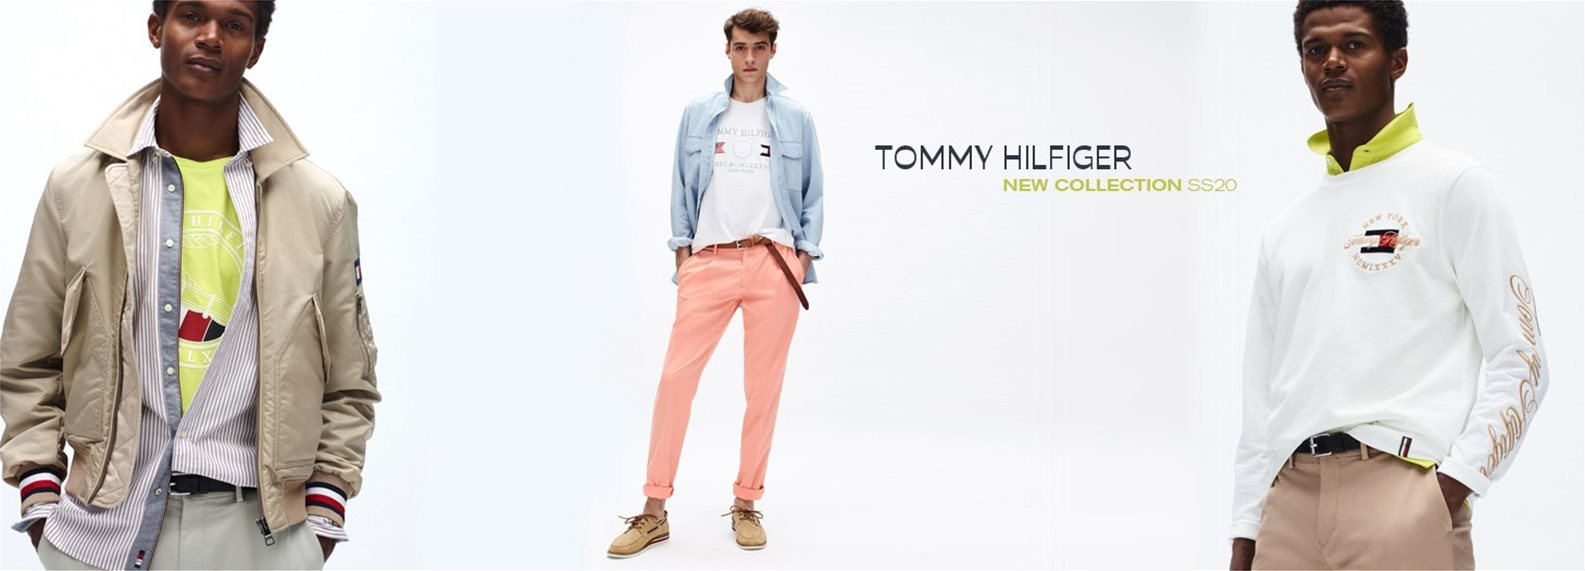 TOMMY HILFIGER | SS20 image